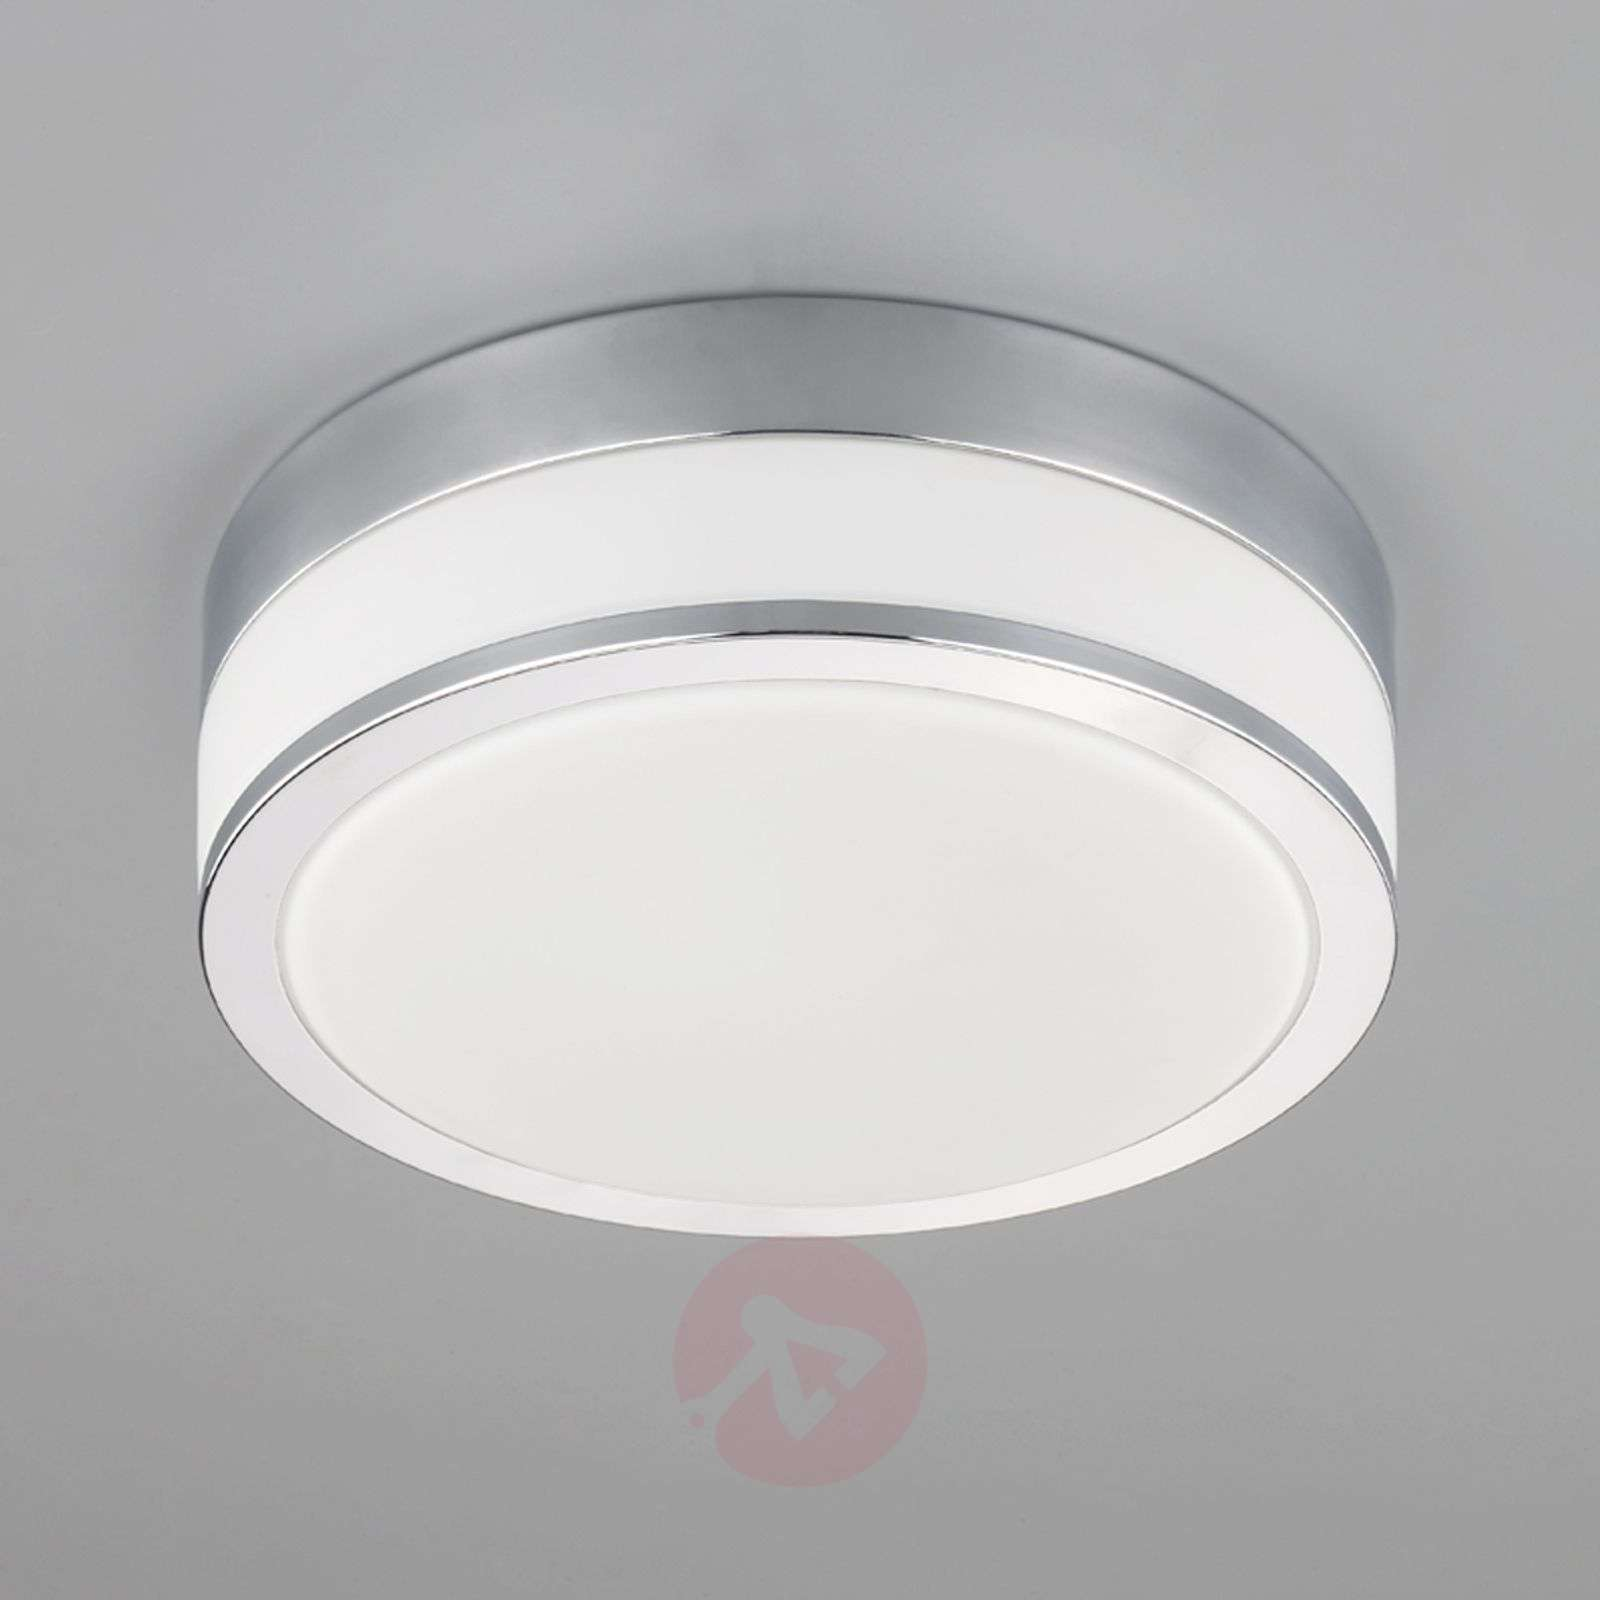 Flavi ‑ ceiling light for the bathroom, chrome-9620633-027